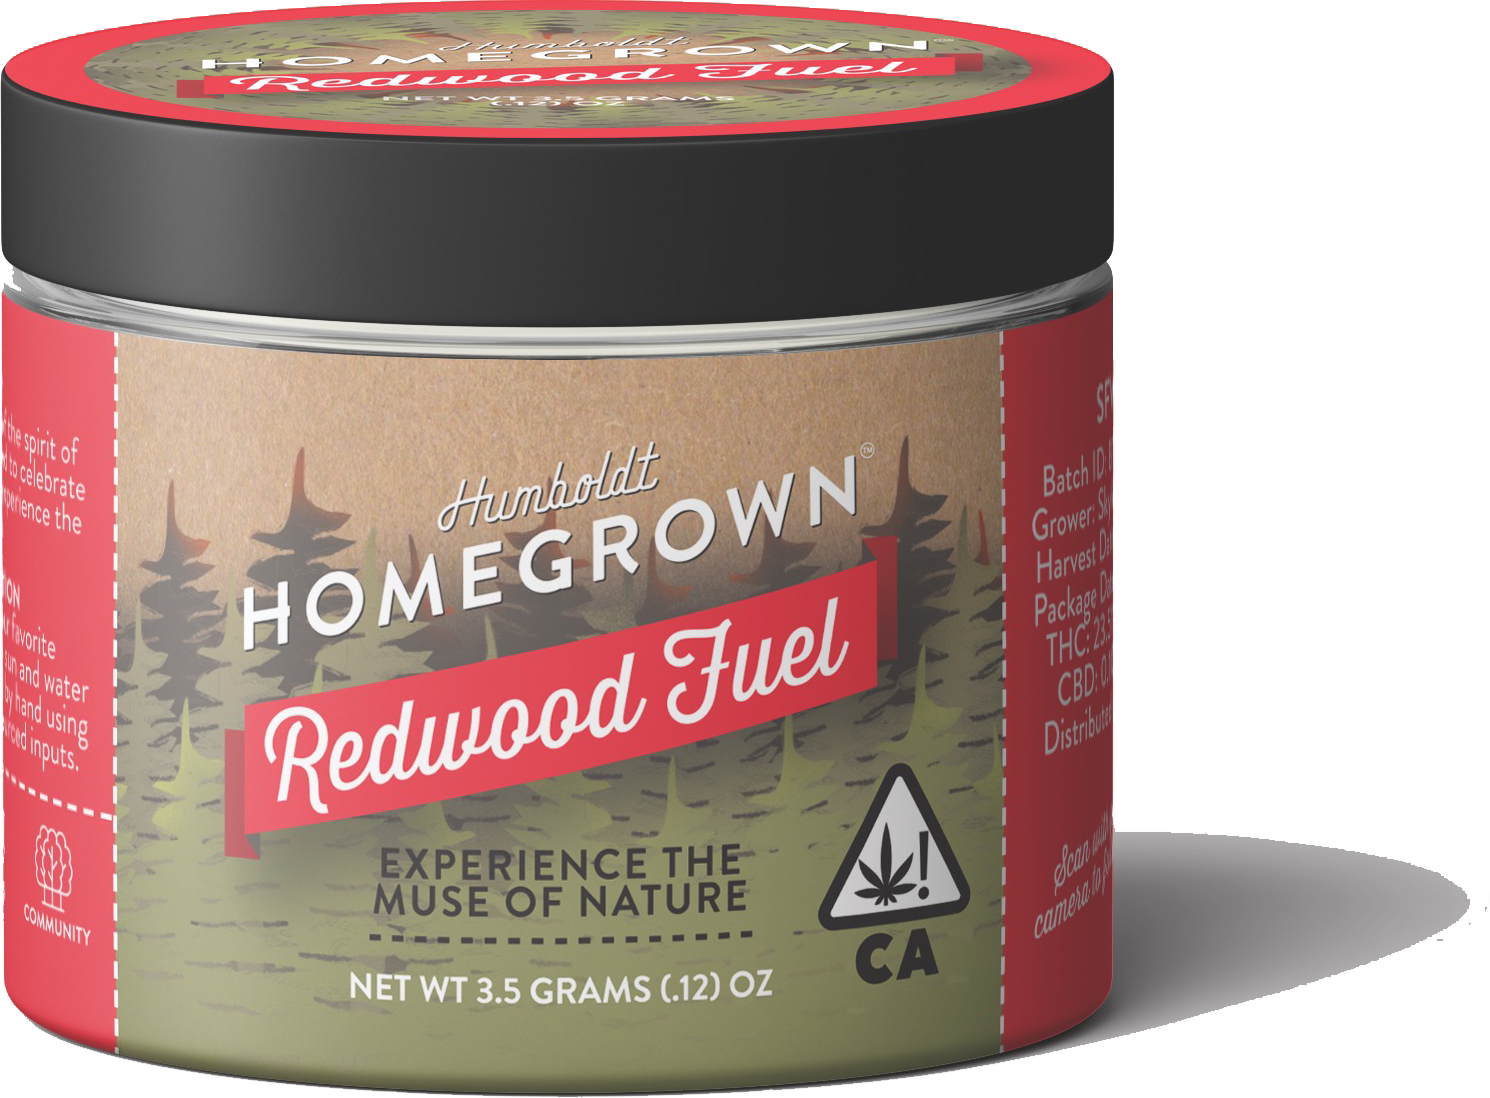 Organically Sourced Cannabis Humboldt Homegrown Redwood Fuel